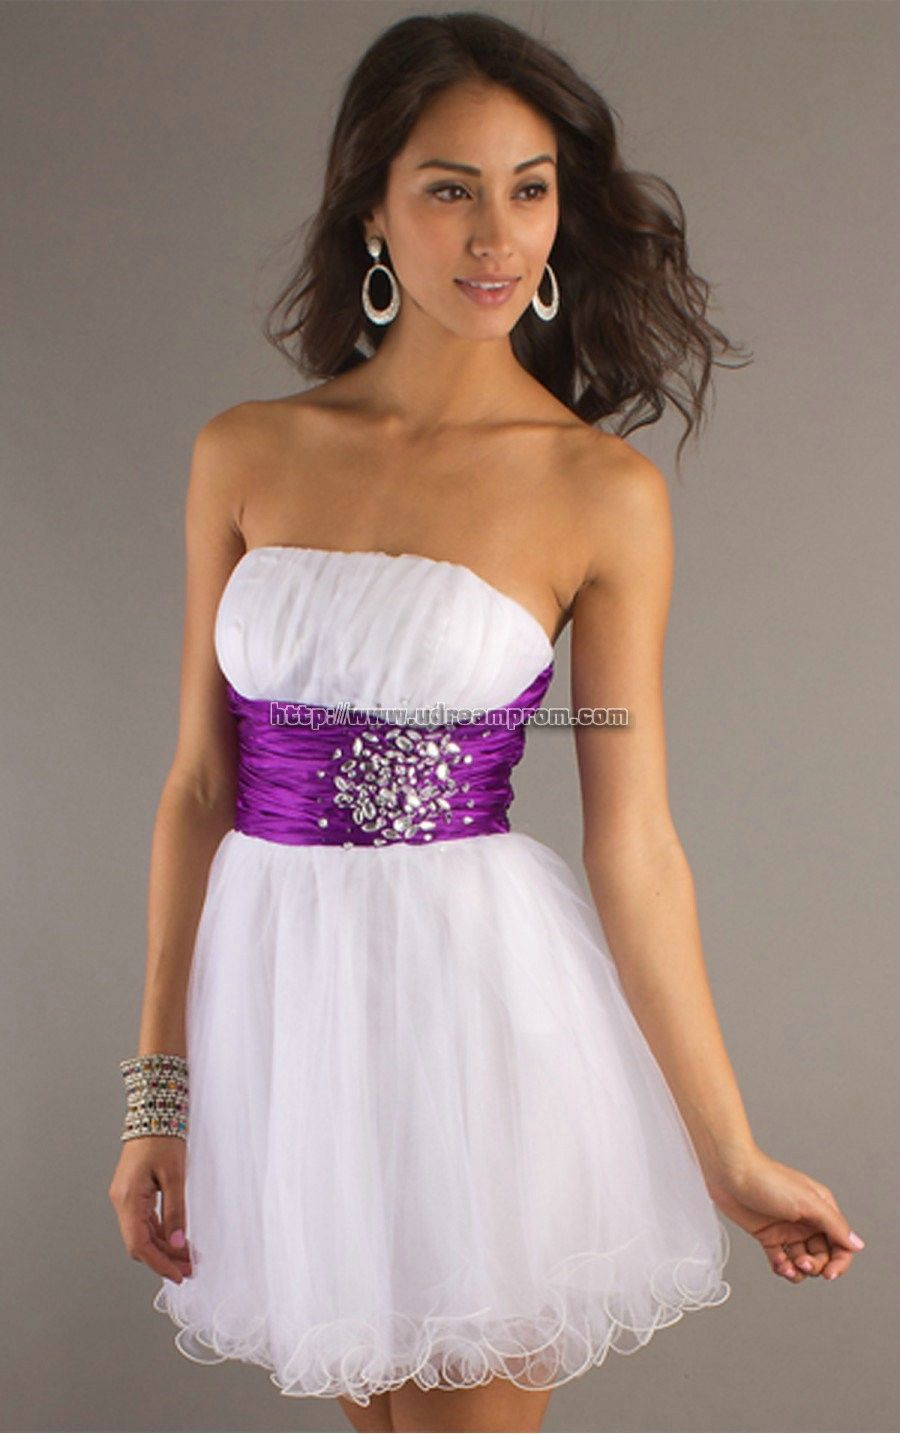 Cocktail Dress In White With A Purple Belt Dresses Pinterest